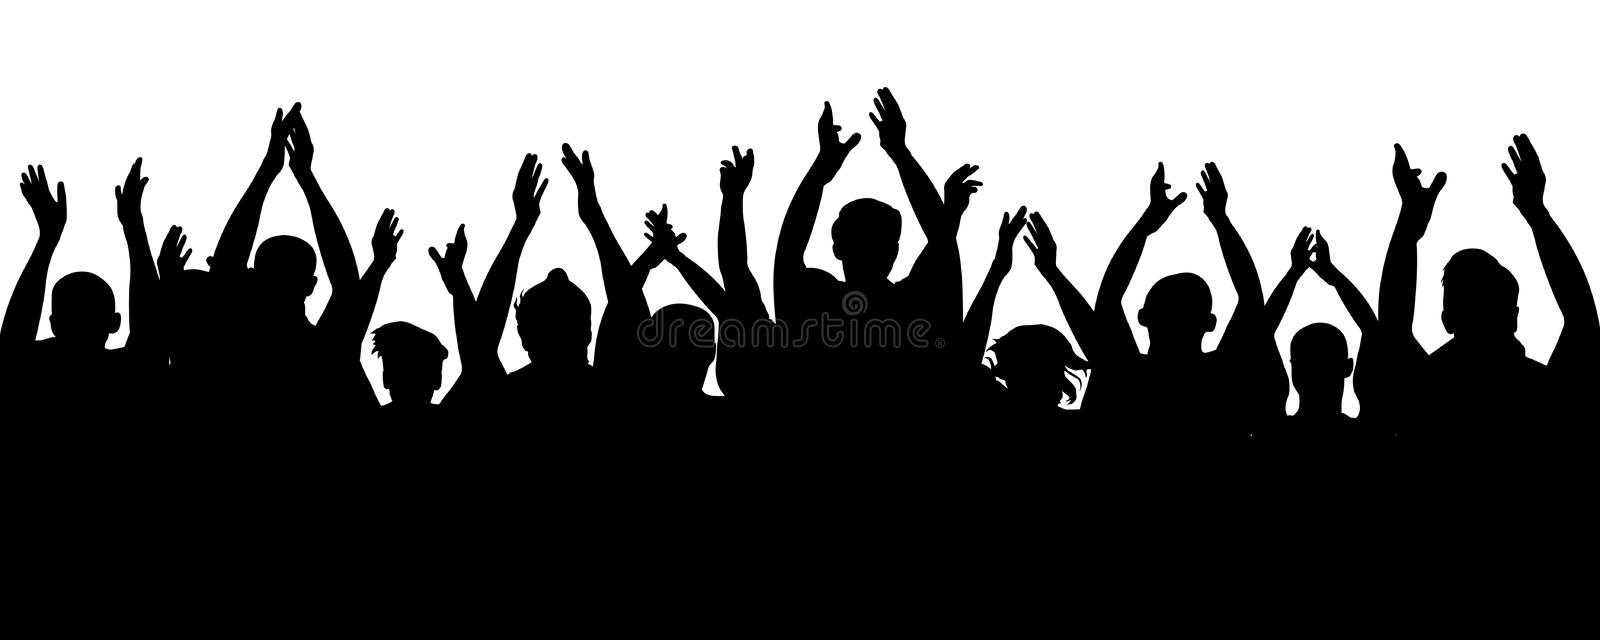 Applause audience. Crowd people cheering, cheer hands up. Cheerful mob fans applauding, clapping. Party, concert, sport. vector illustration